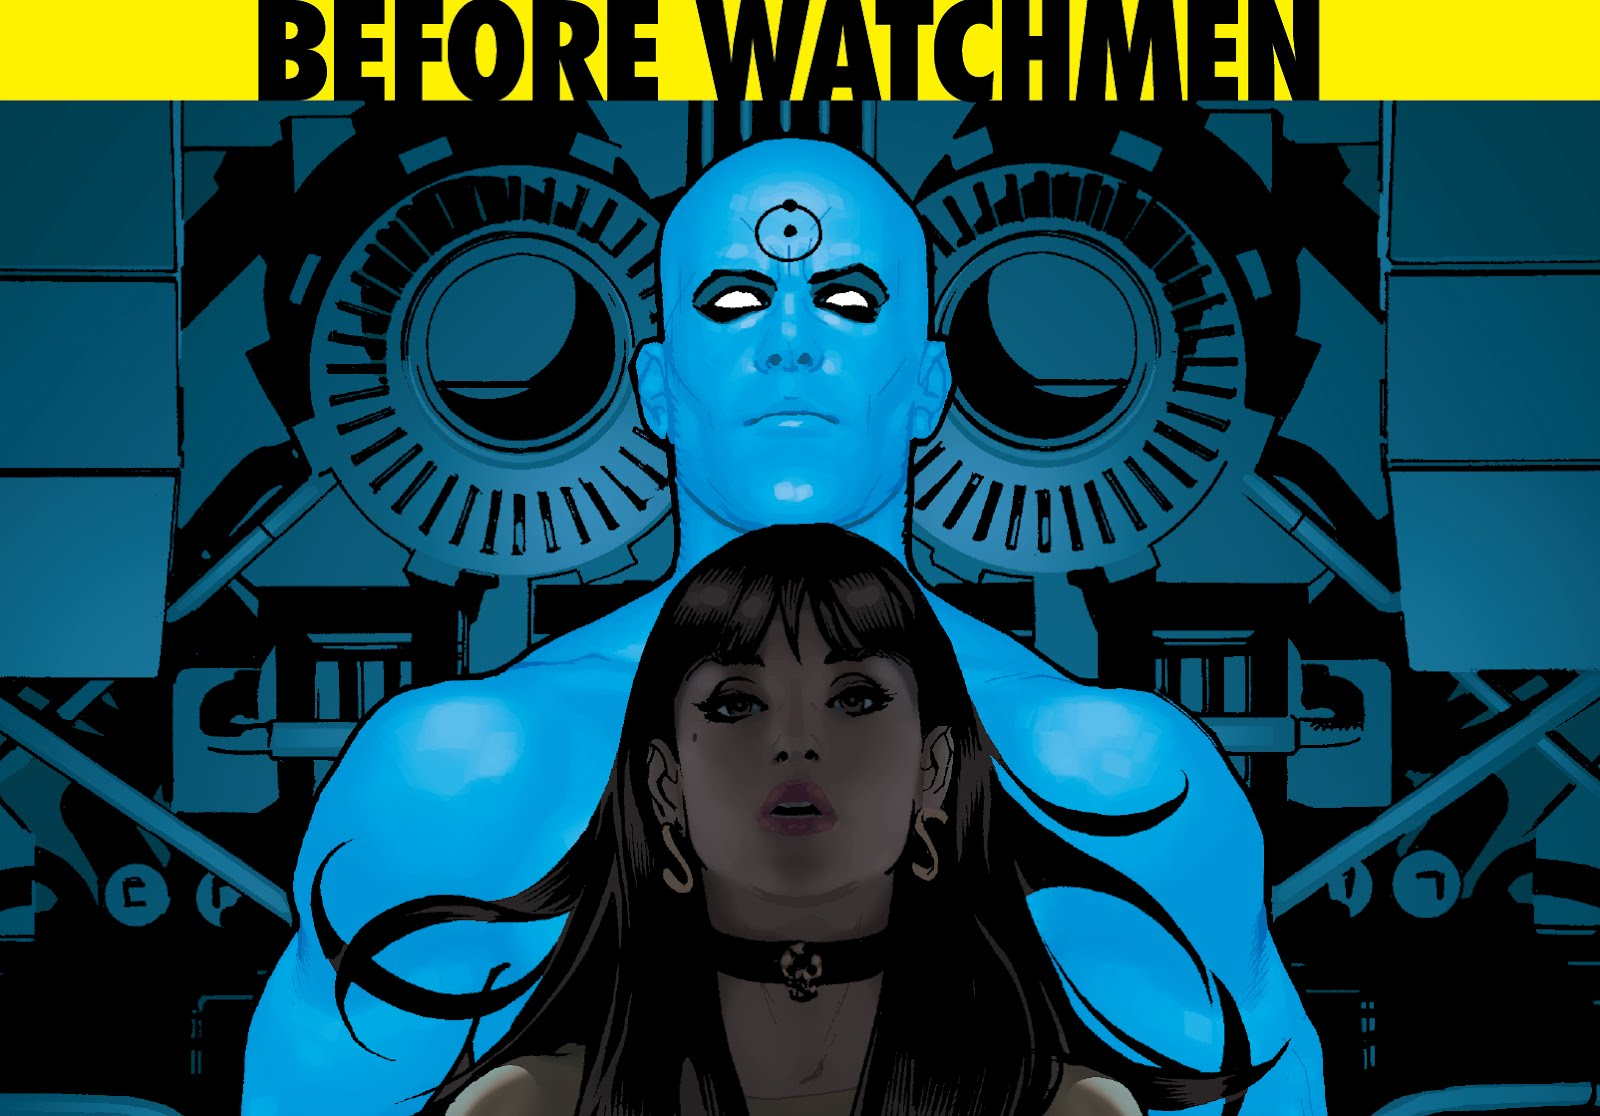 watchmen world war ii and dr Russia was hurt badly during world war ii, and glass believes the government will do anything to protect itself, even if that means mutually assured destruction, which is when two or more opposing sides engage in nuclear warfare.